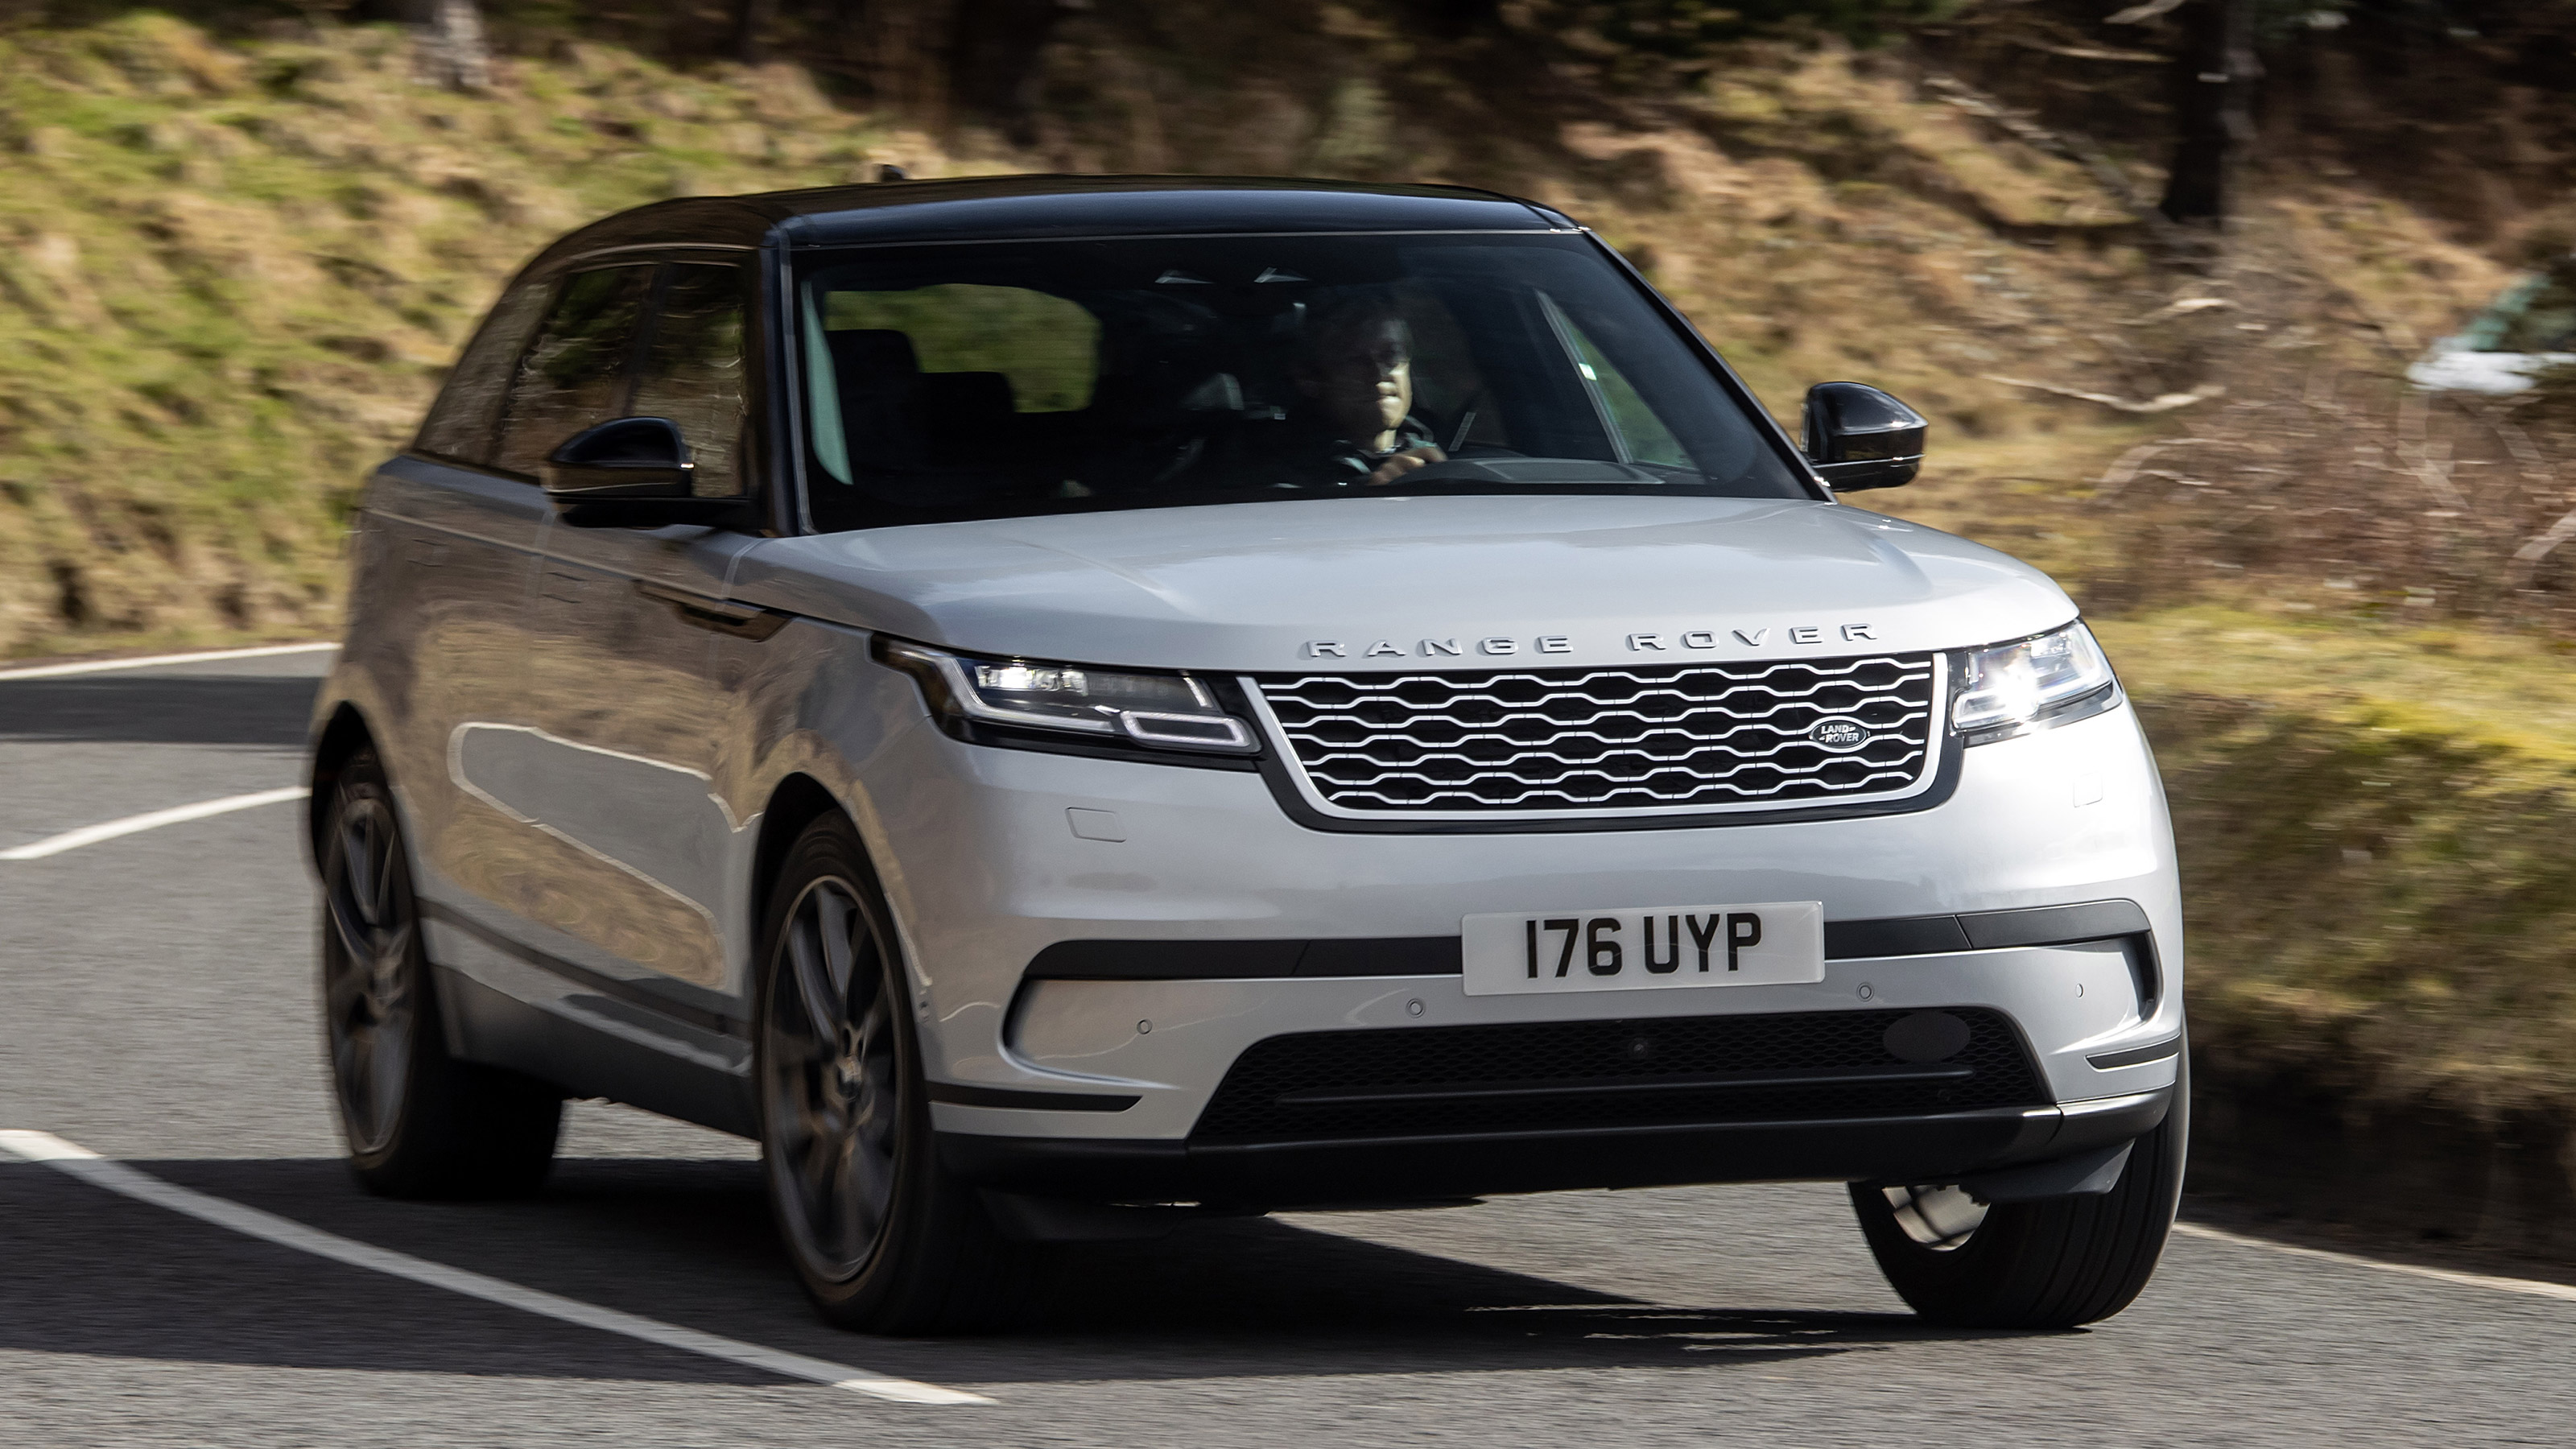 Range Rover Velar SUV review - gallery | Carbuyer